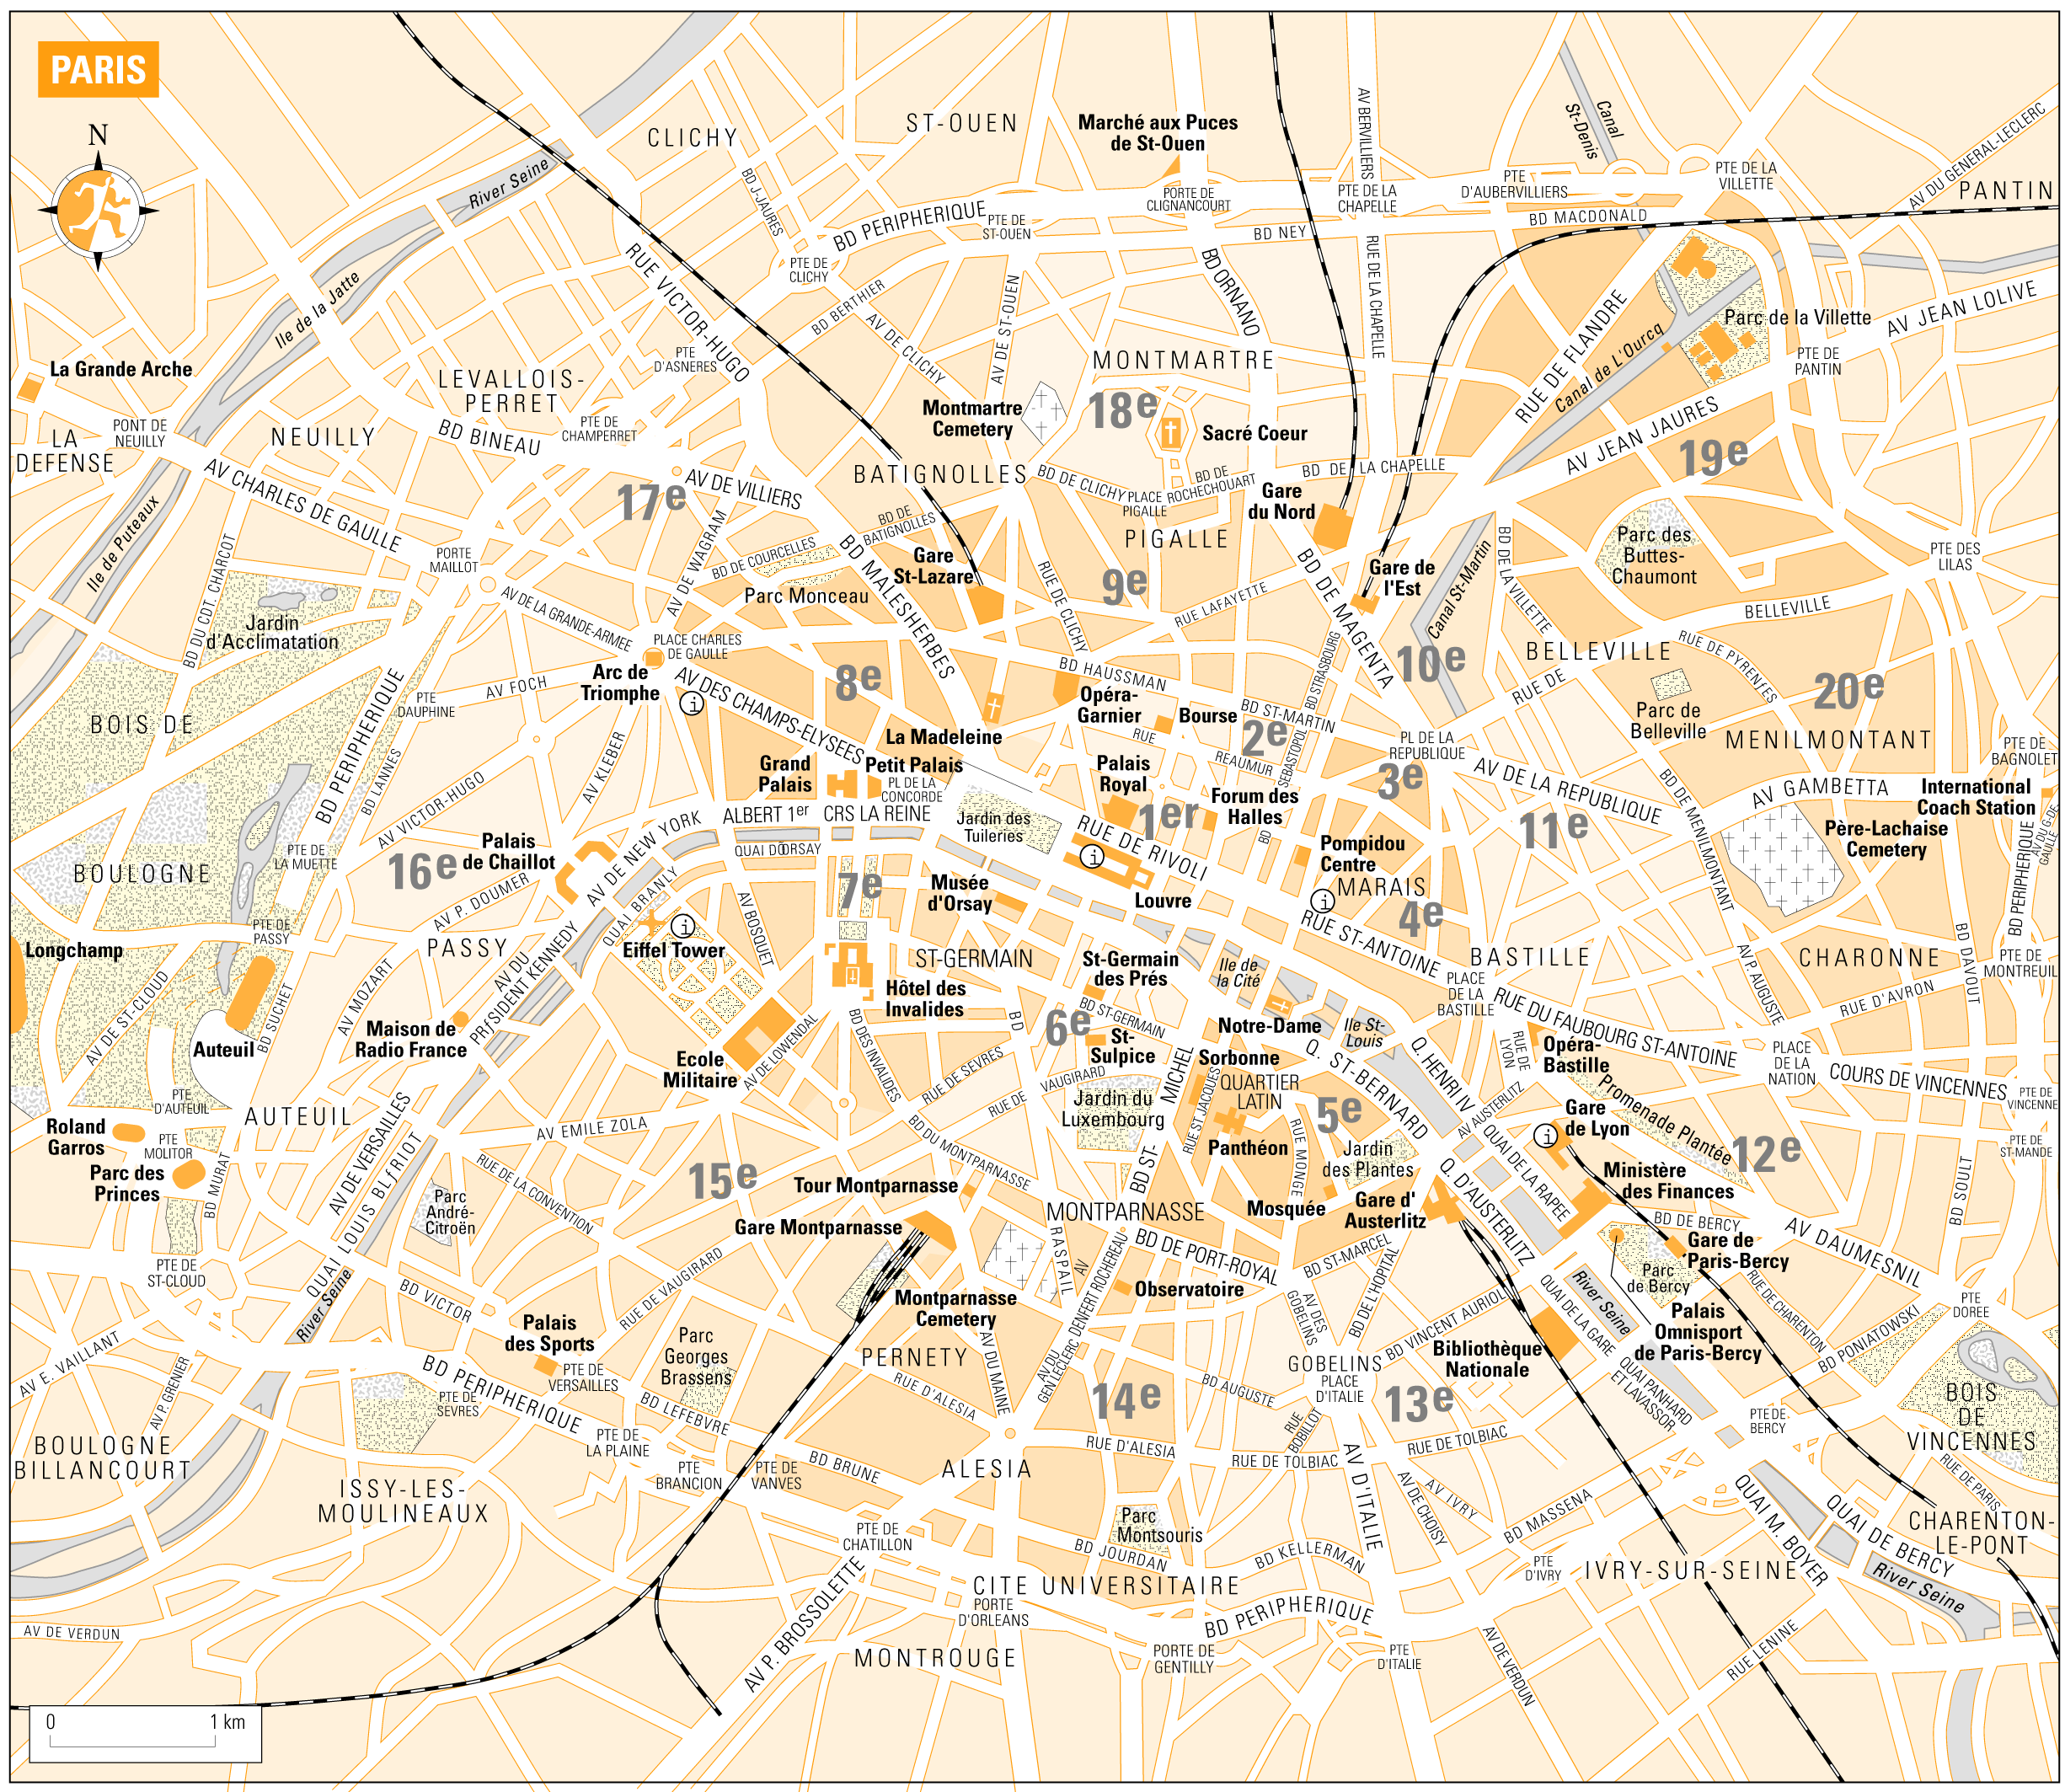 Paris City Map • Mapsof.net.